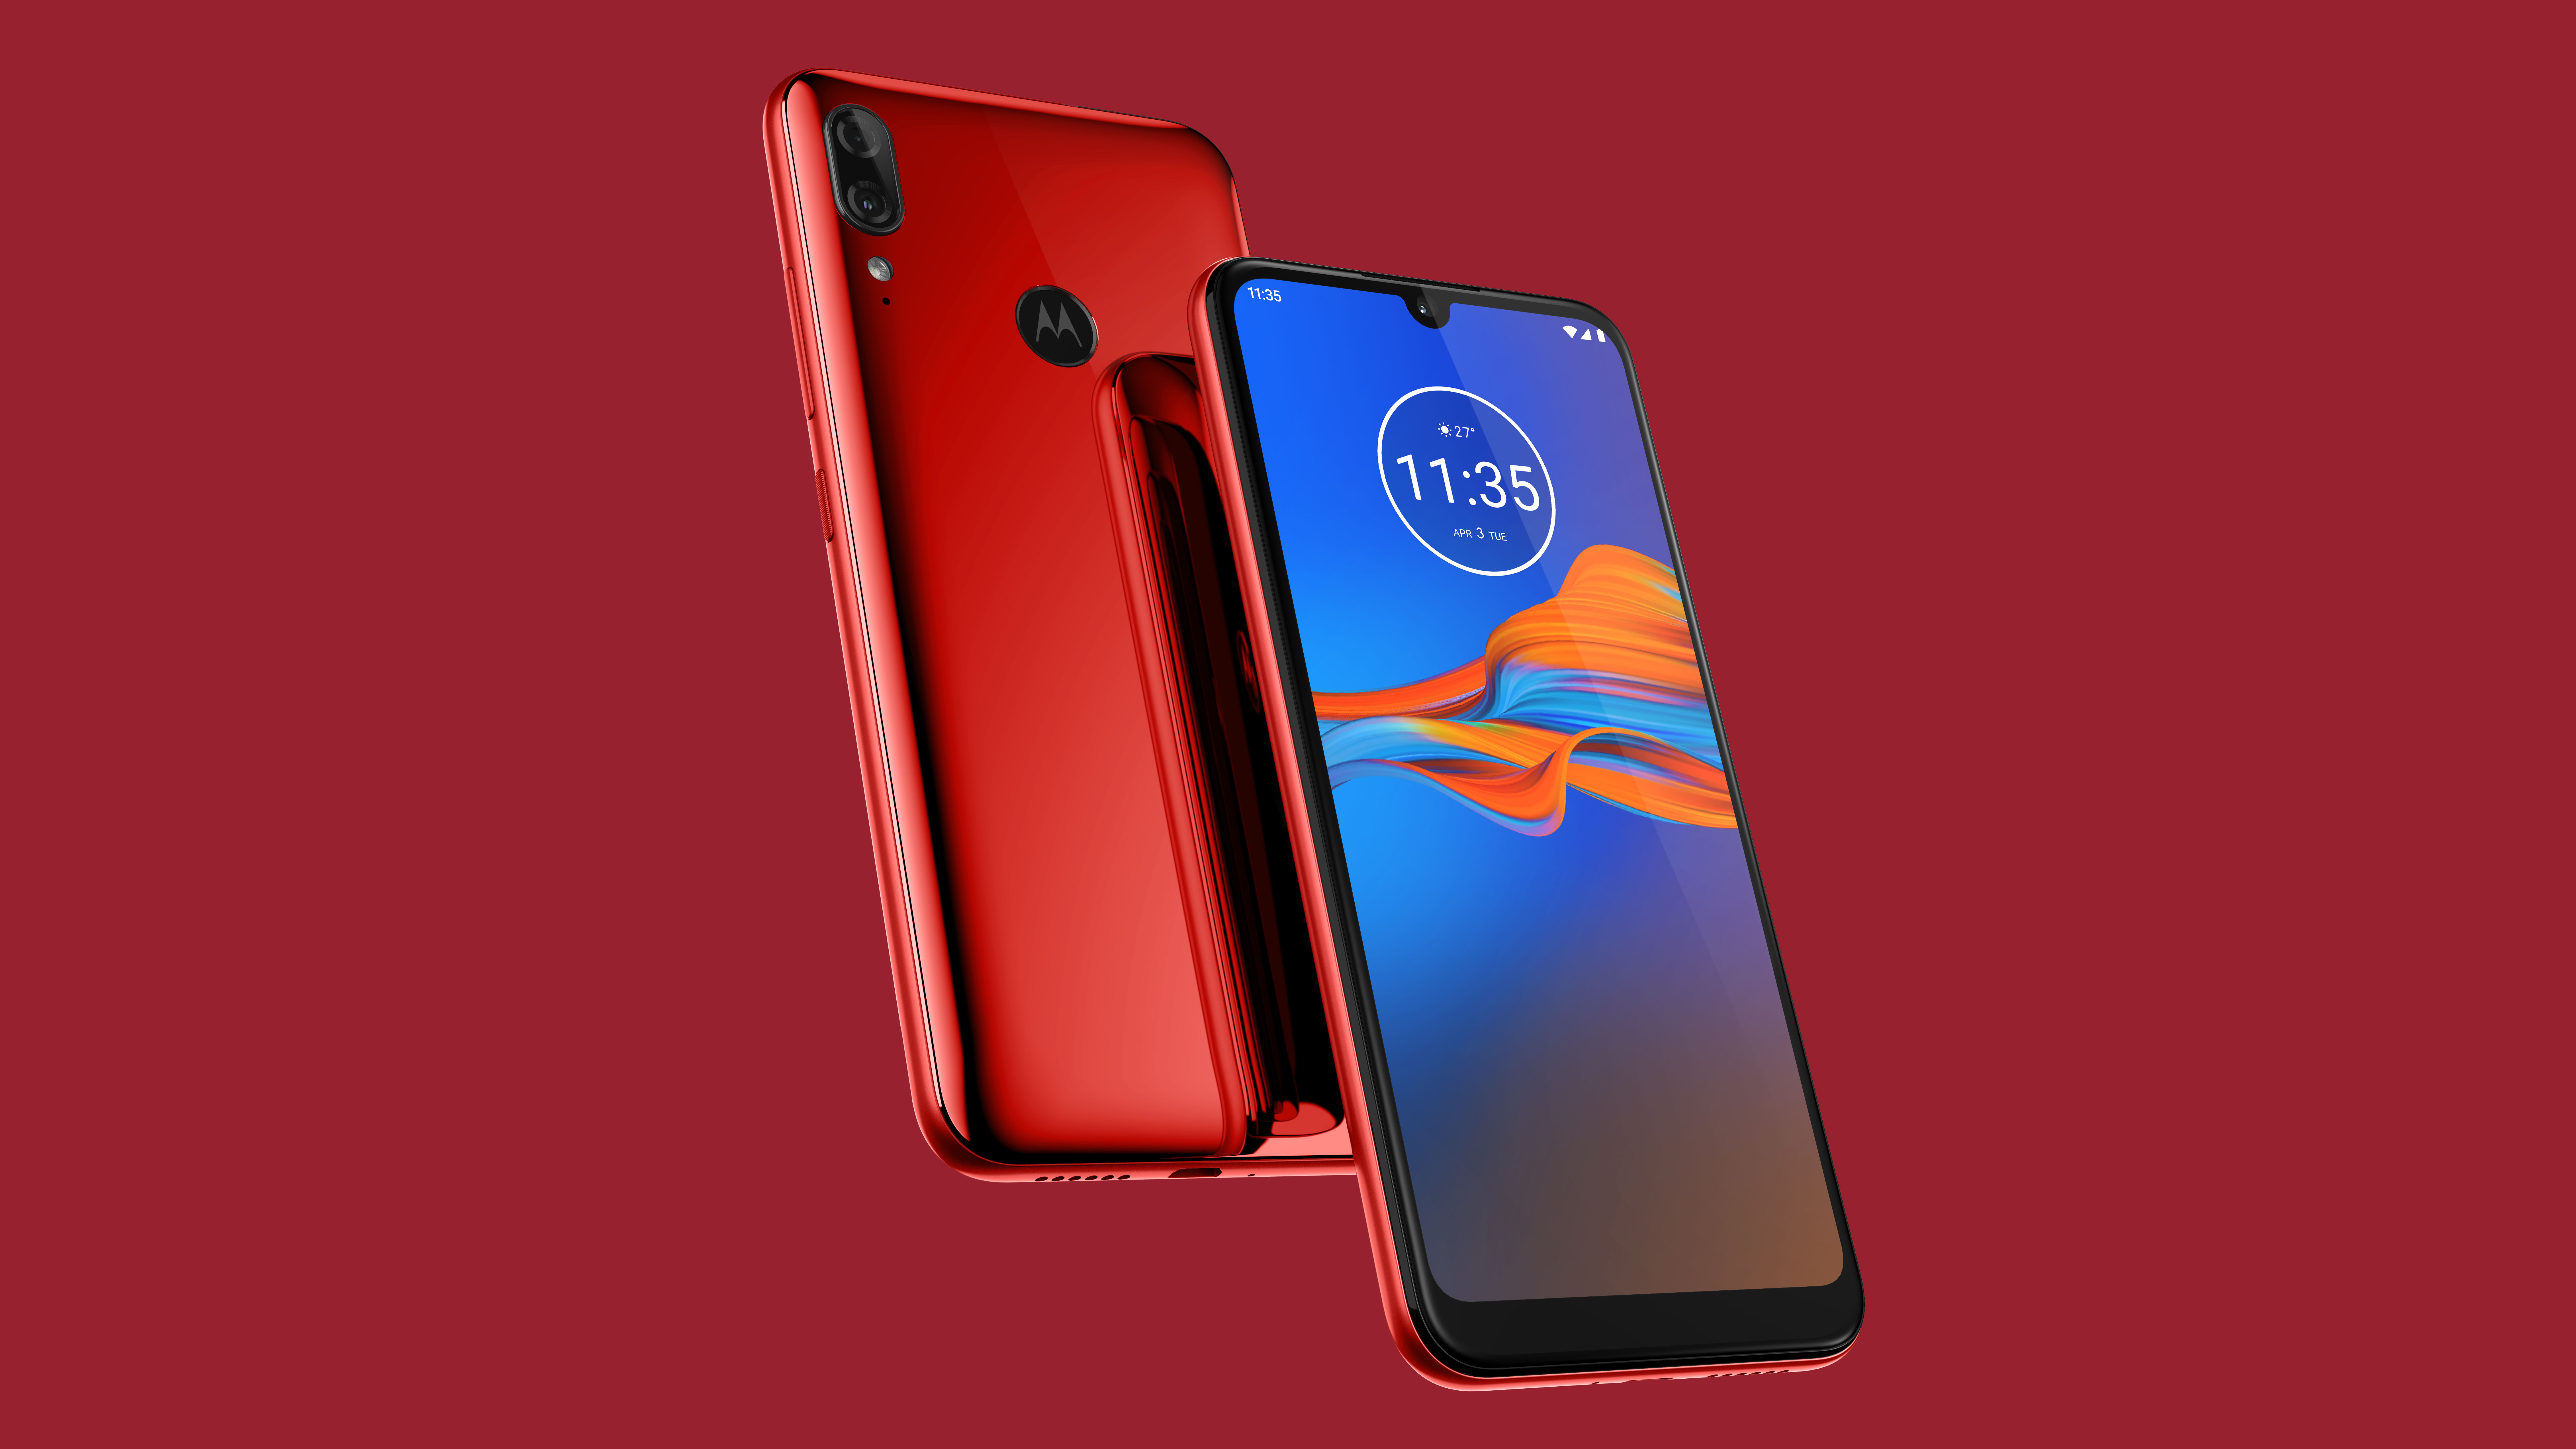 Moto E6 Plus is Motorola's new affordable smartphone with G7